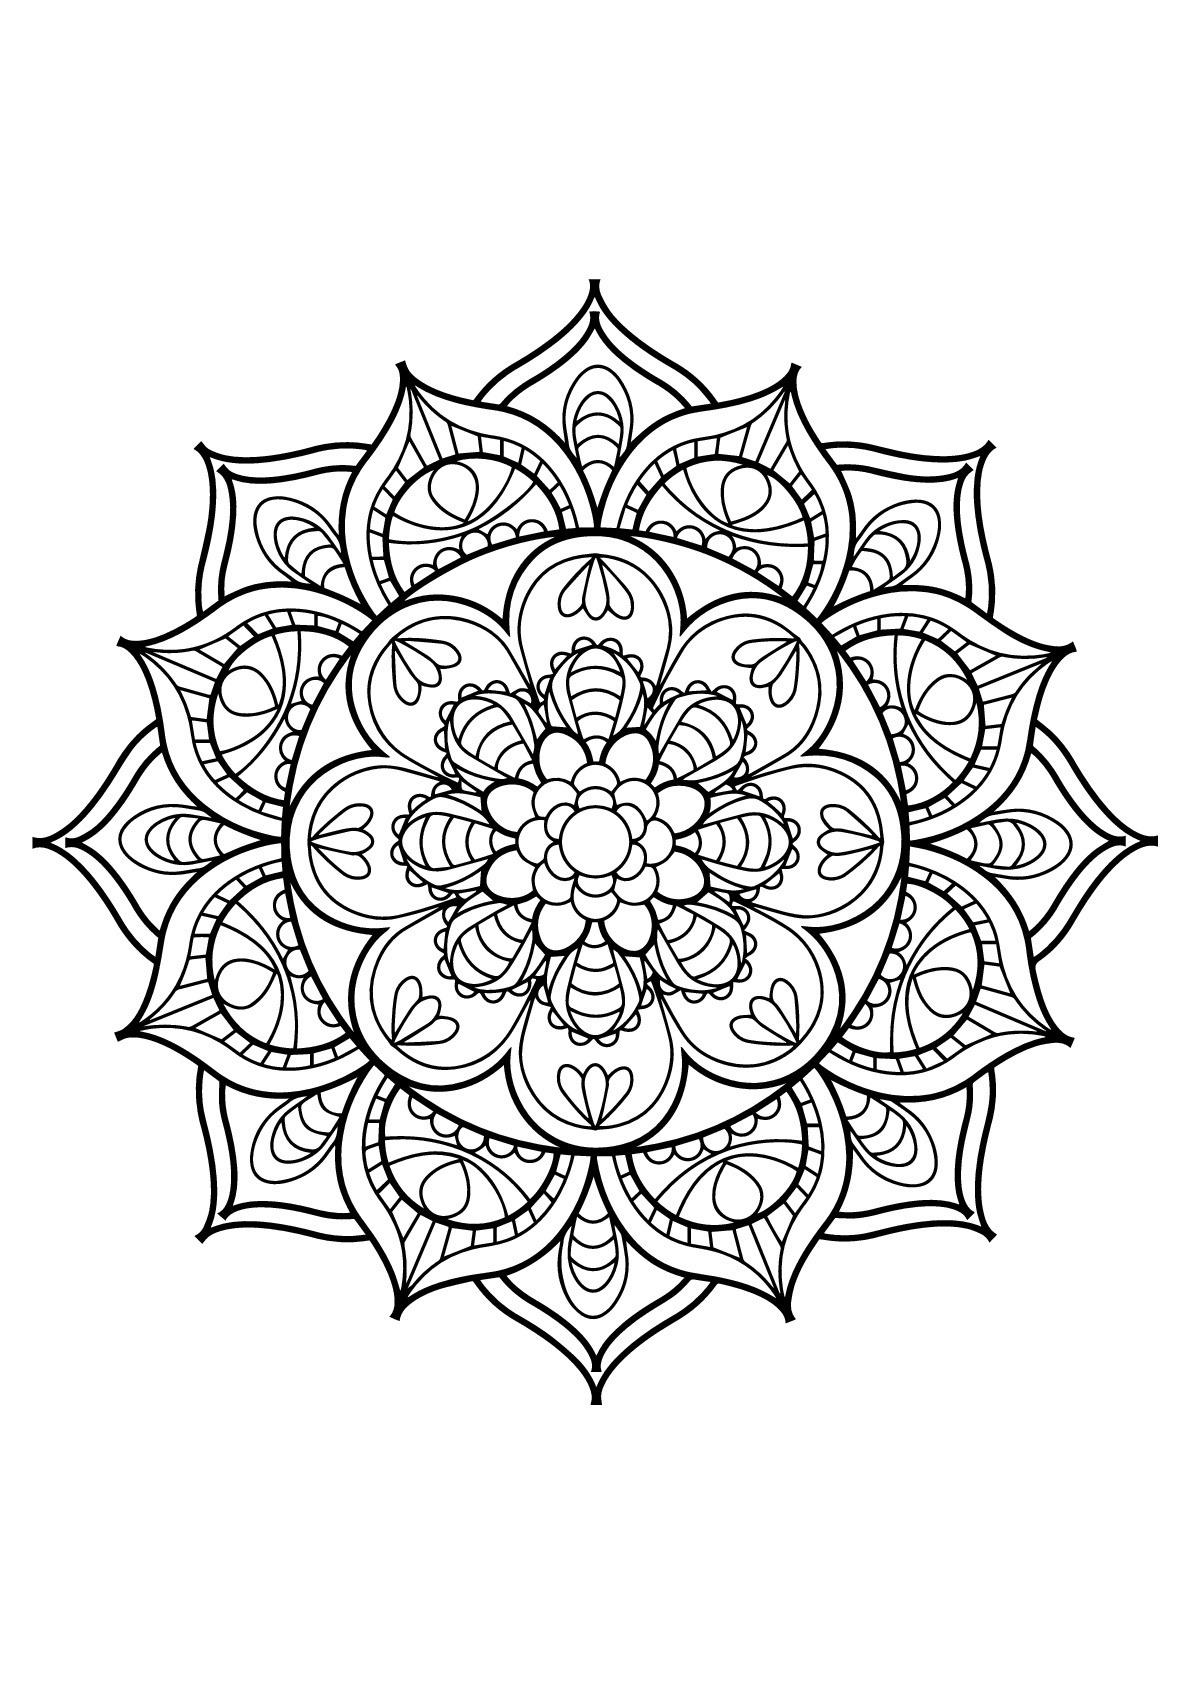 Coloring Page ~ Mandala Coloring Pages To Print Page Beyoncediario - Free Printable Mandala Coloring Pages For Adults